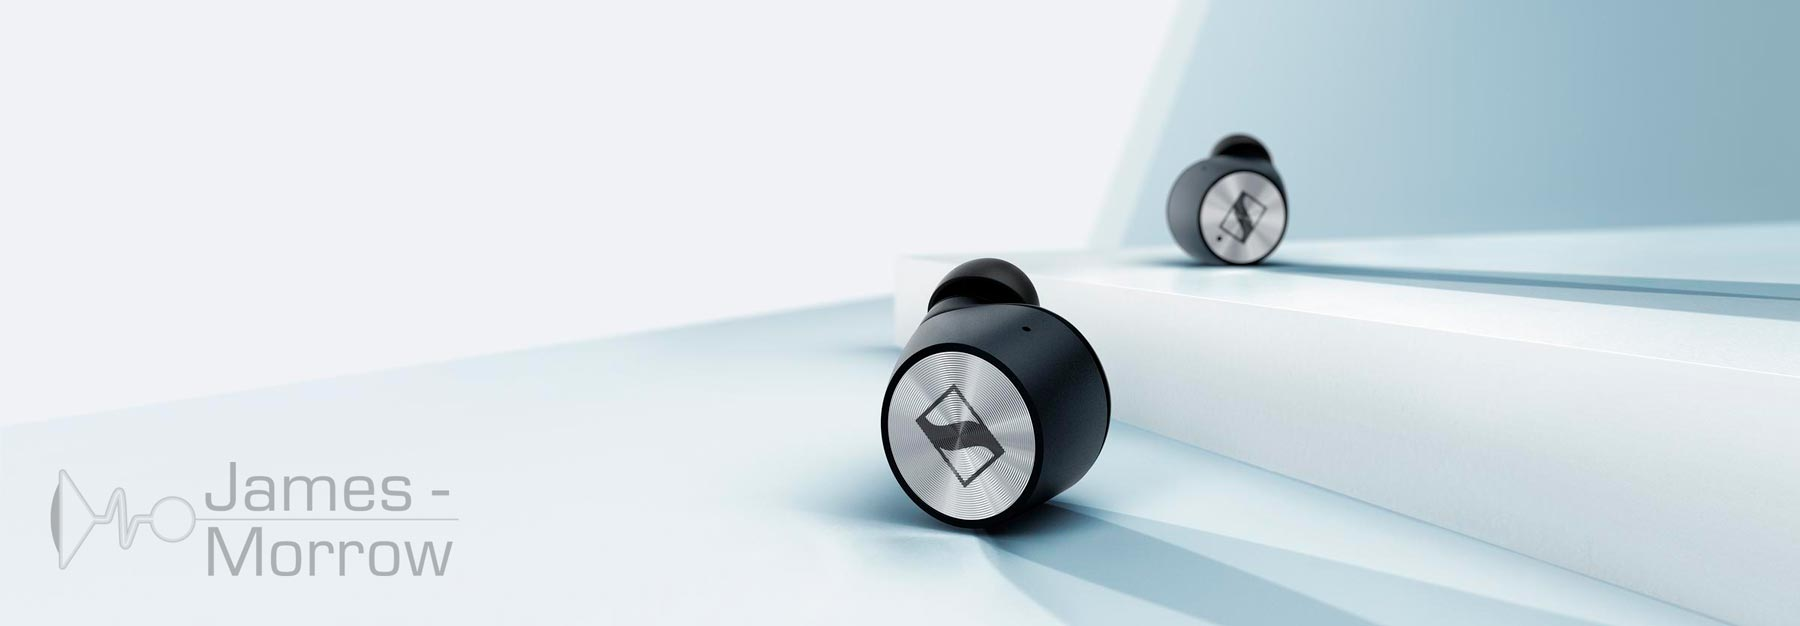 Sennheiser Momentum True Wireless Earphones 2 black banner image